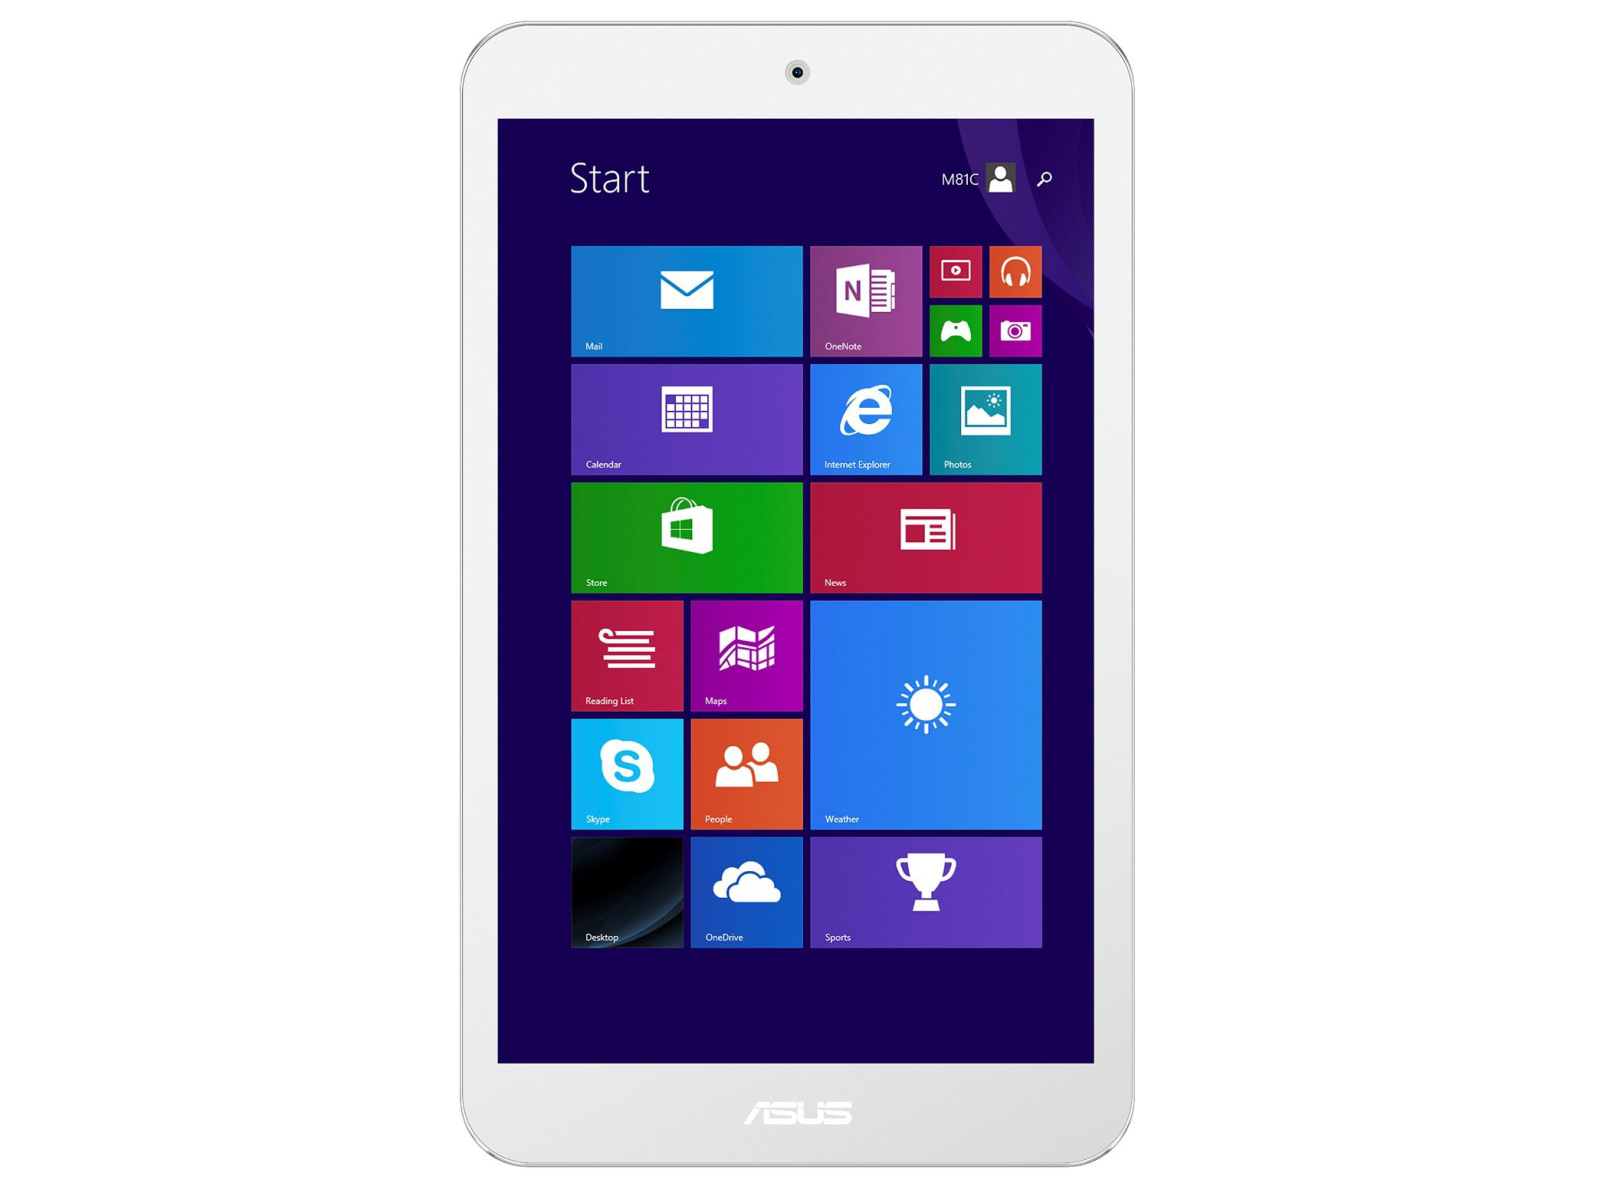 Asus VivoTab 8 M81C Tablet Review